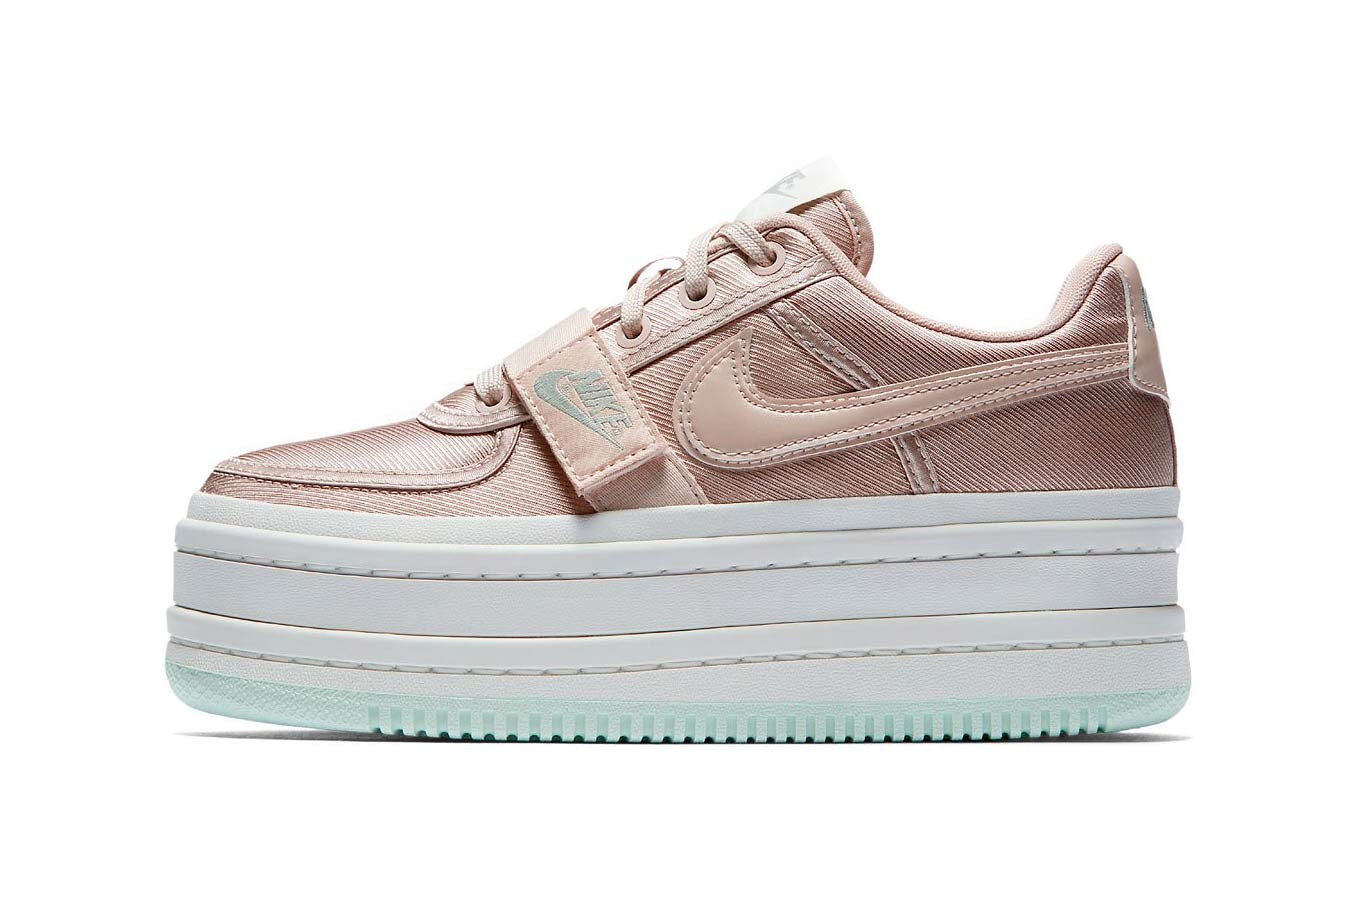 Nike\u0027s Vandal Surprise Is Debuted in Two New Summer Shades